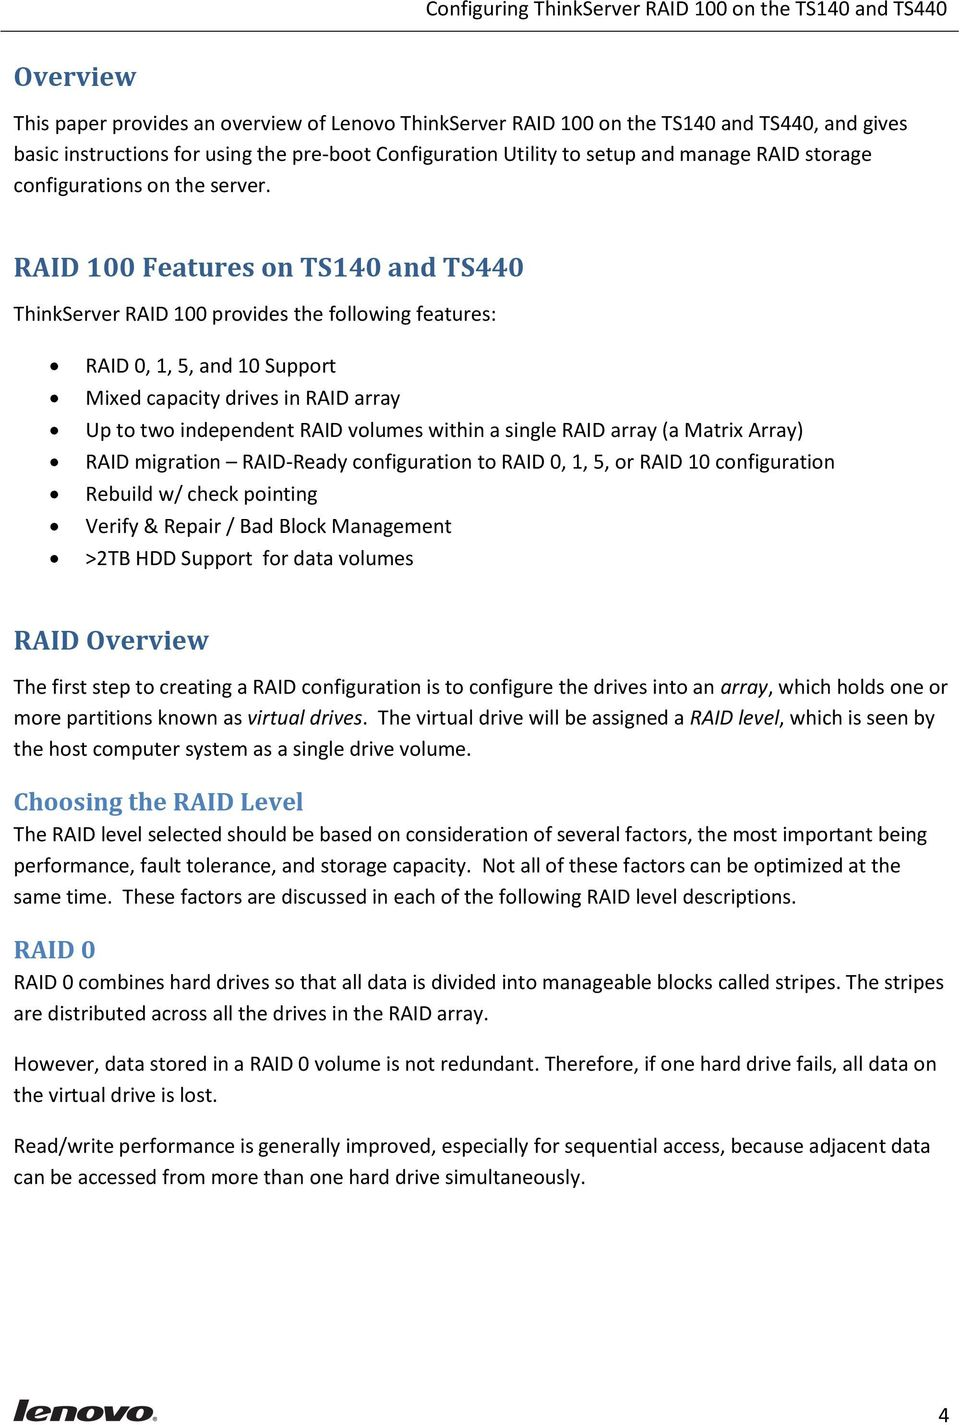 RAID 100 Features on TS140 and TS440 ThinkServer RAID 100 provides the following features: RAID 0, 1, 5, and 10 Support Mixed capacity drives in RAID array Up to two independent RAID volumes within a